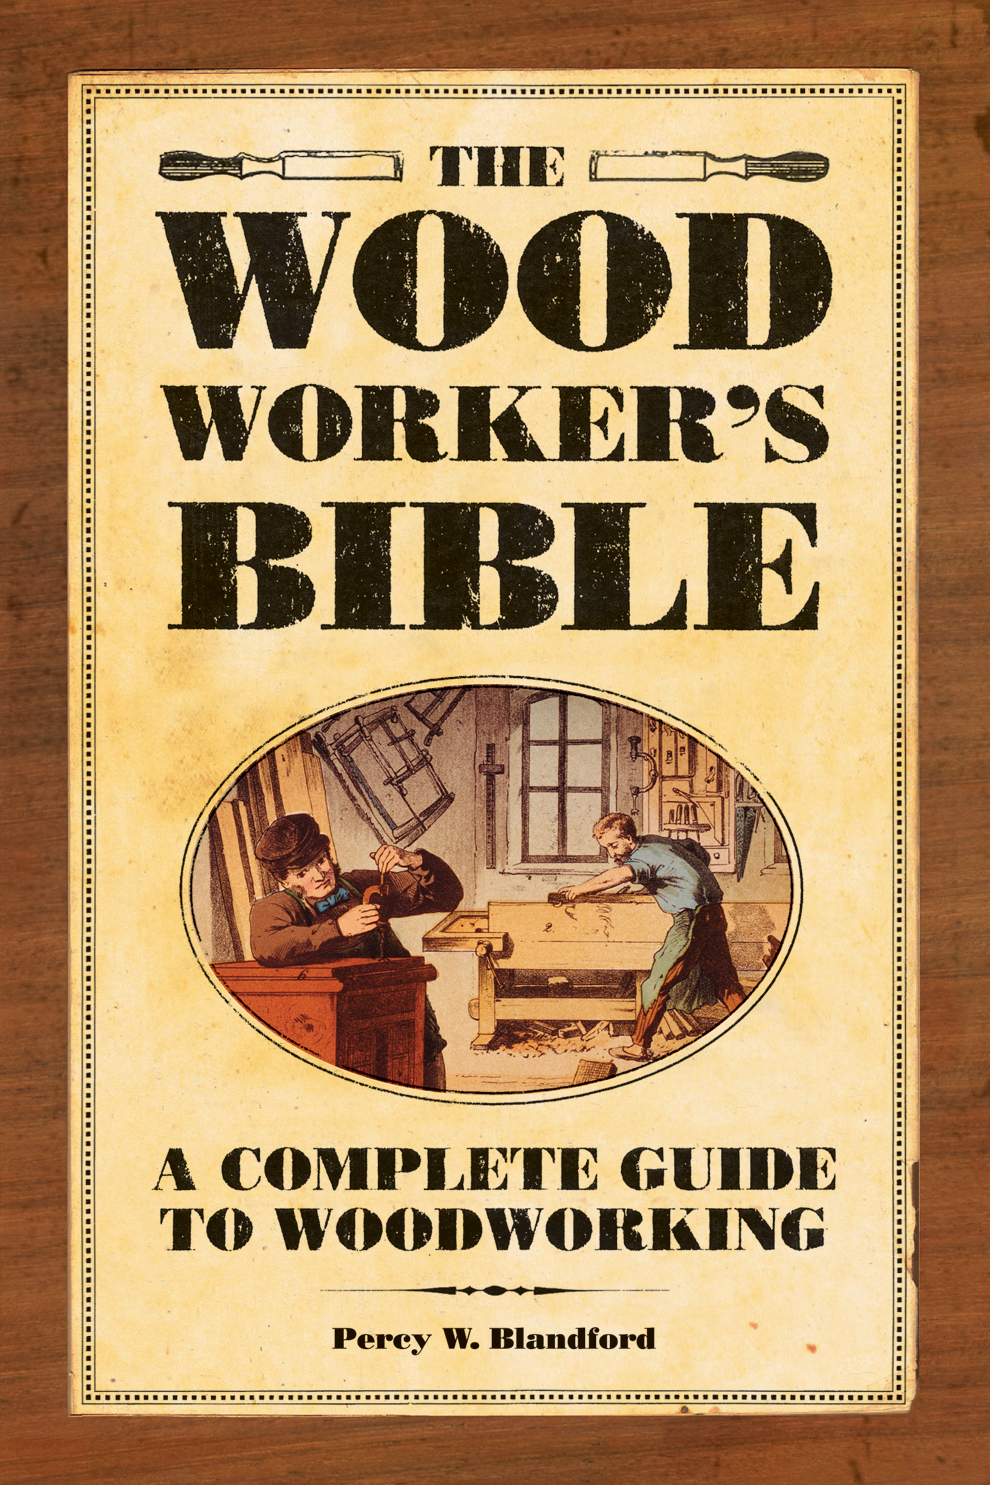 The Woodworker's Bible A Complete Guide to Woodworking